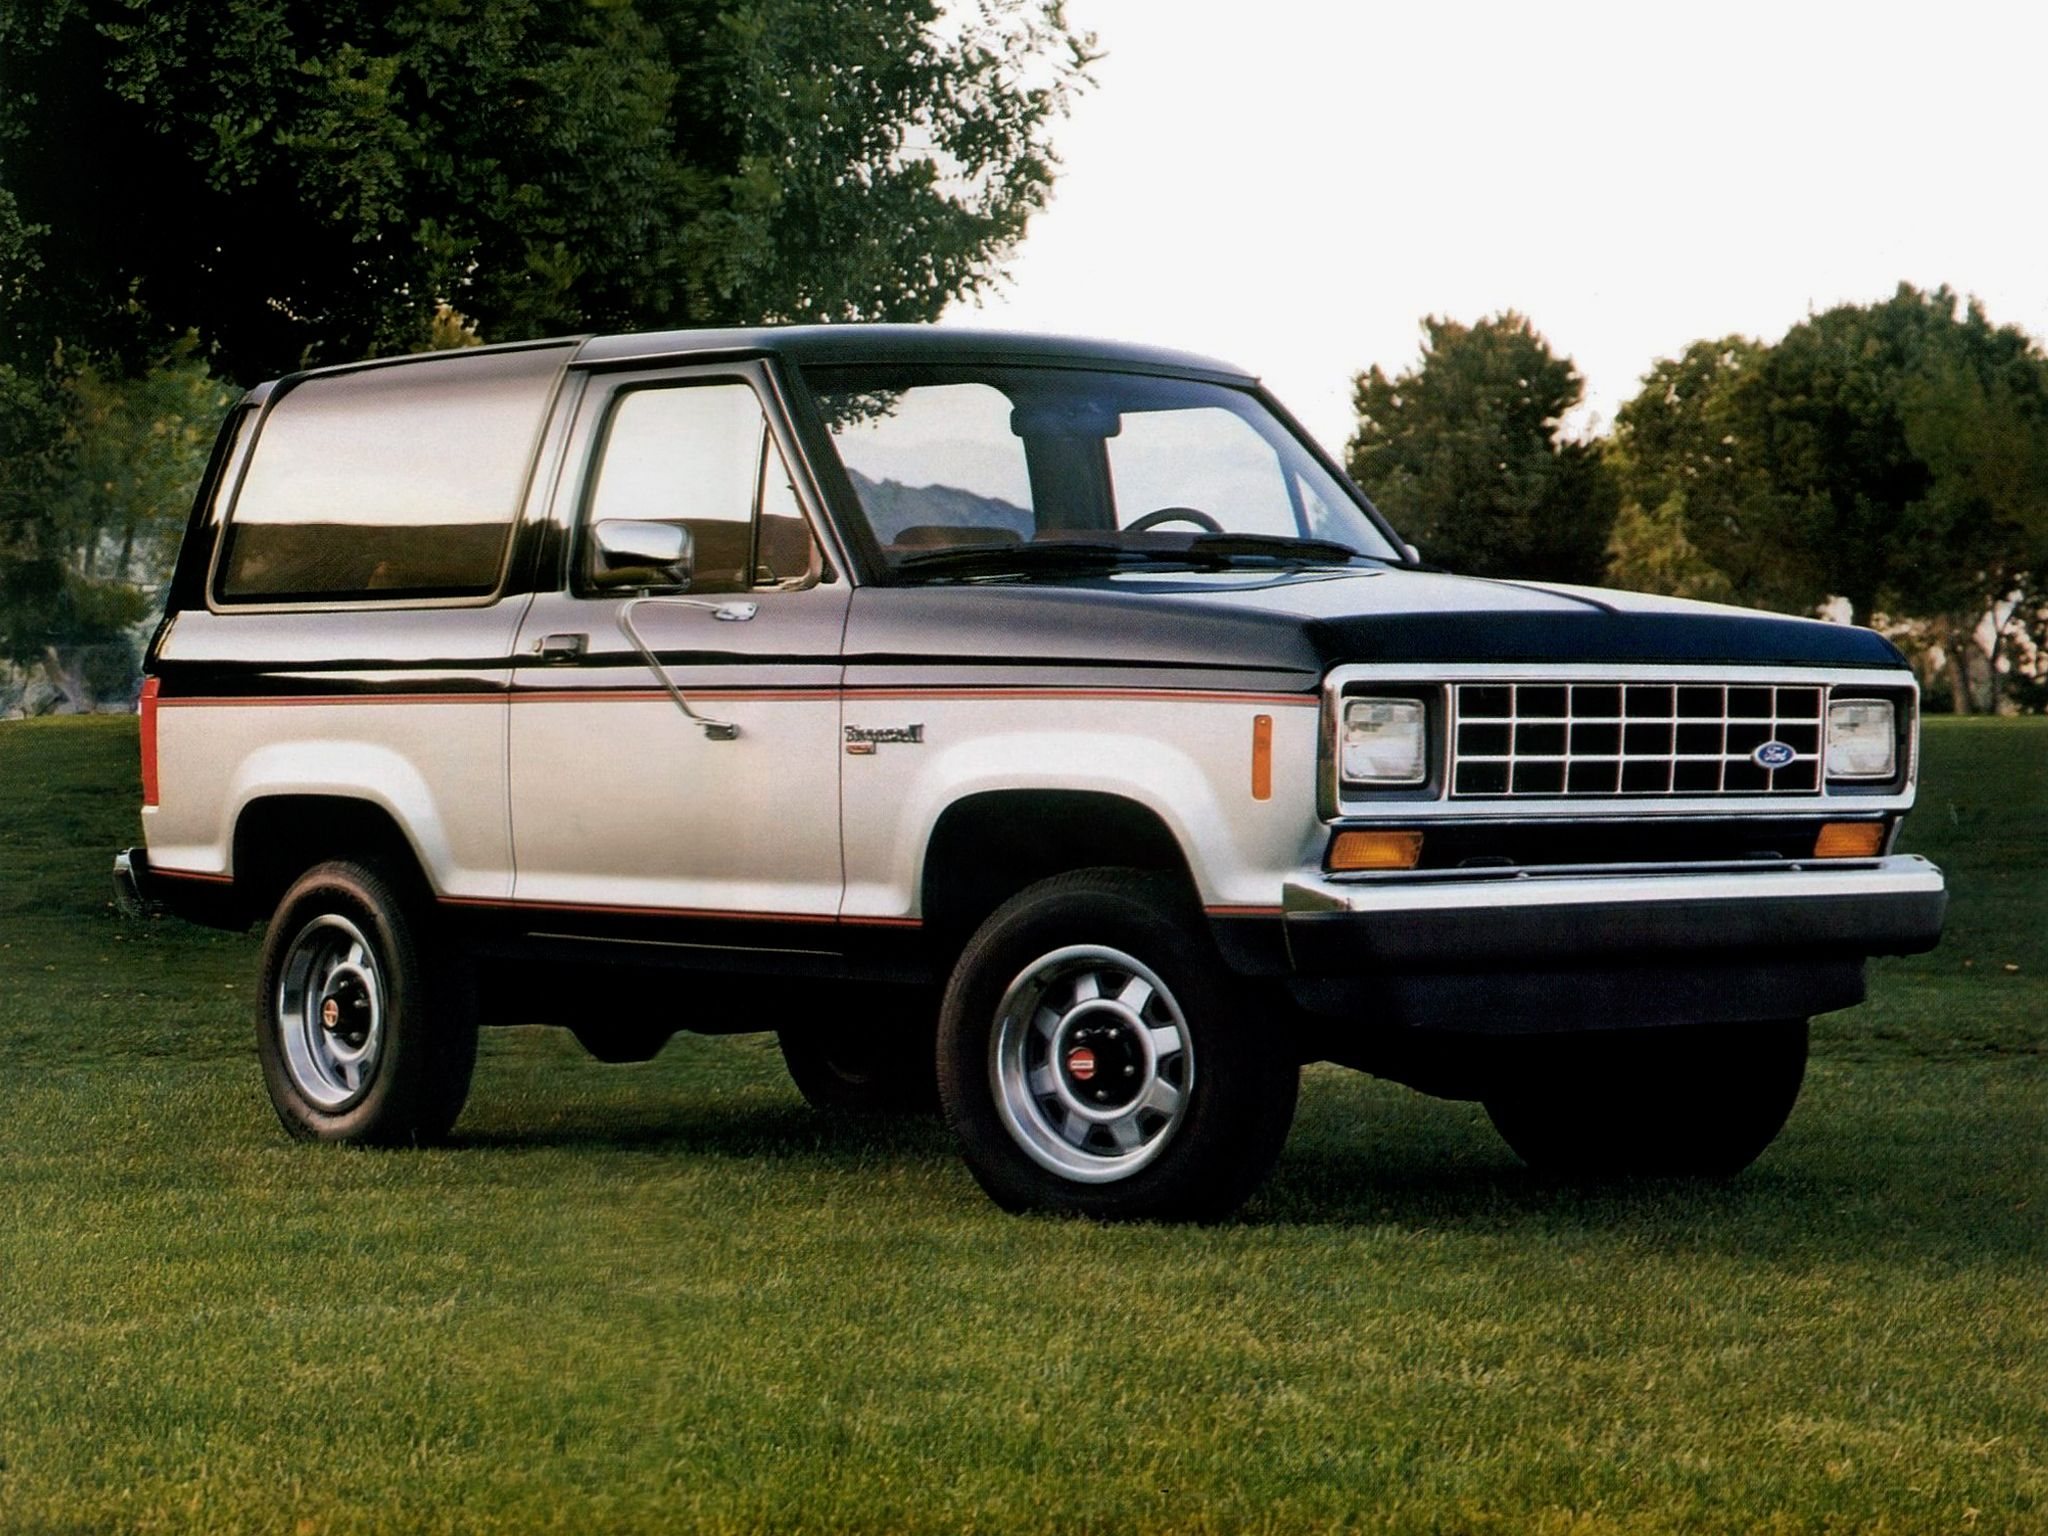 The Ford Bronco Ii Is A Two Door Compact Sized Four Wheel Drive